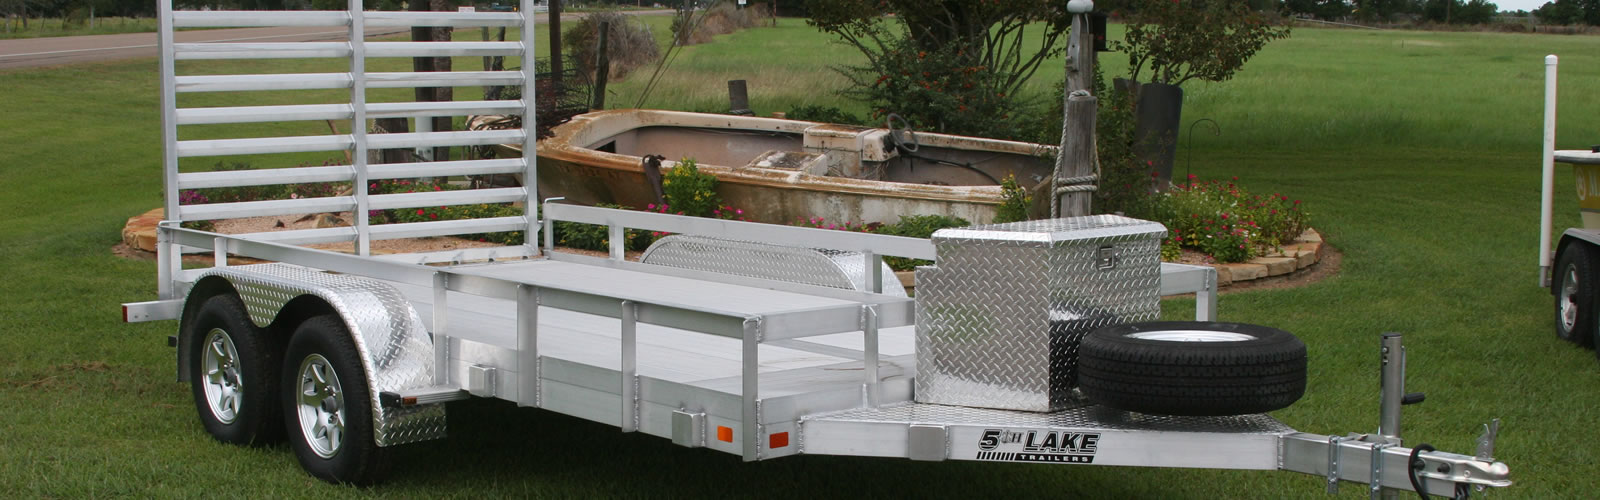 We can custom build Aluminum Utility Trailers